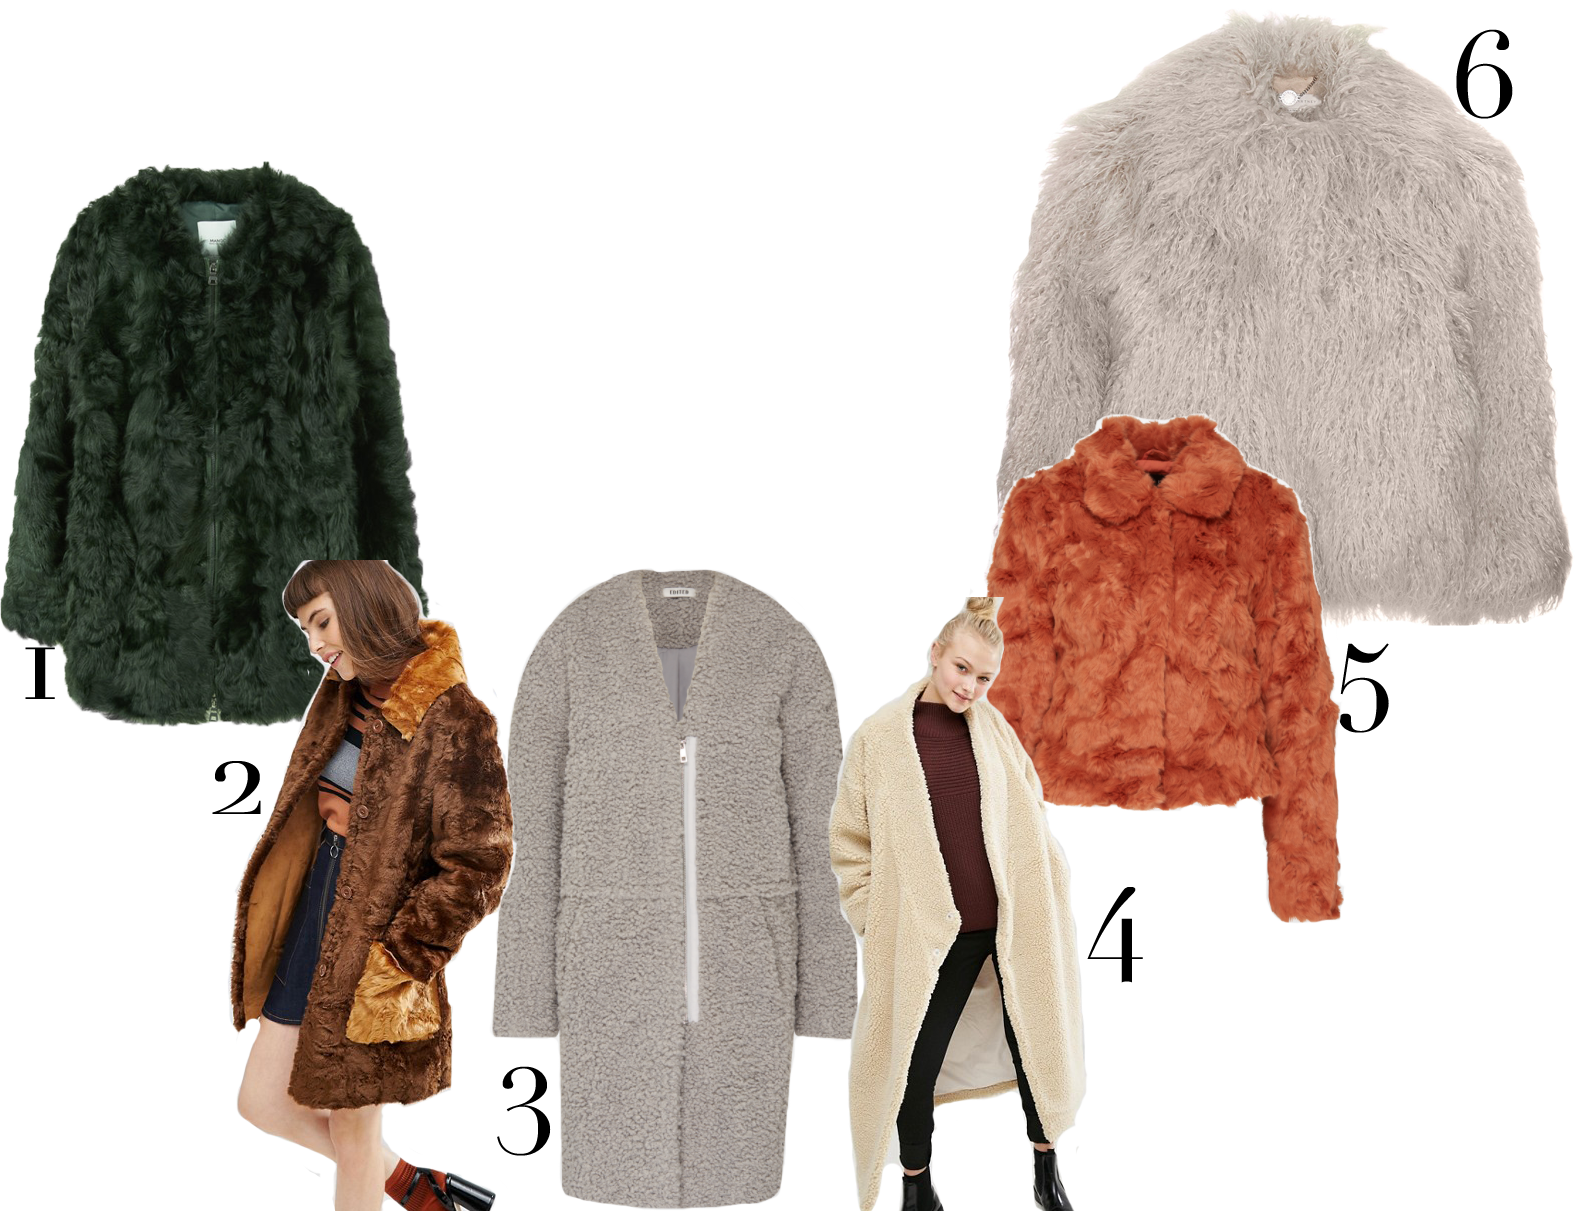 masha-sedgwick-fakefur-fashion-shopping